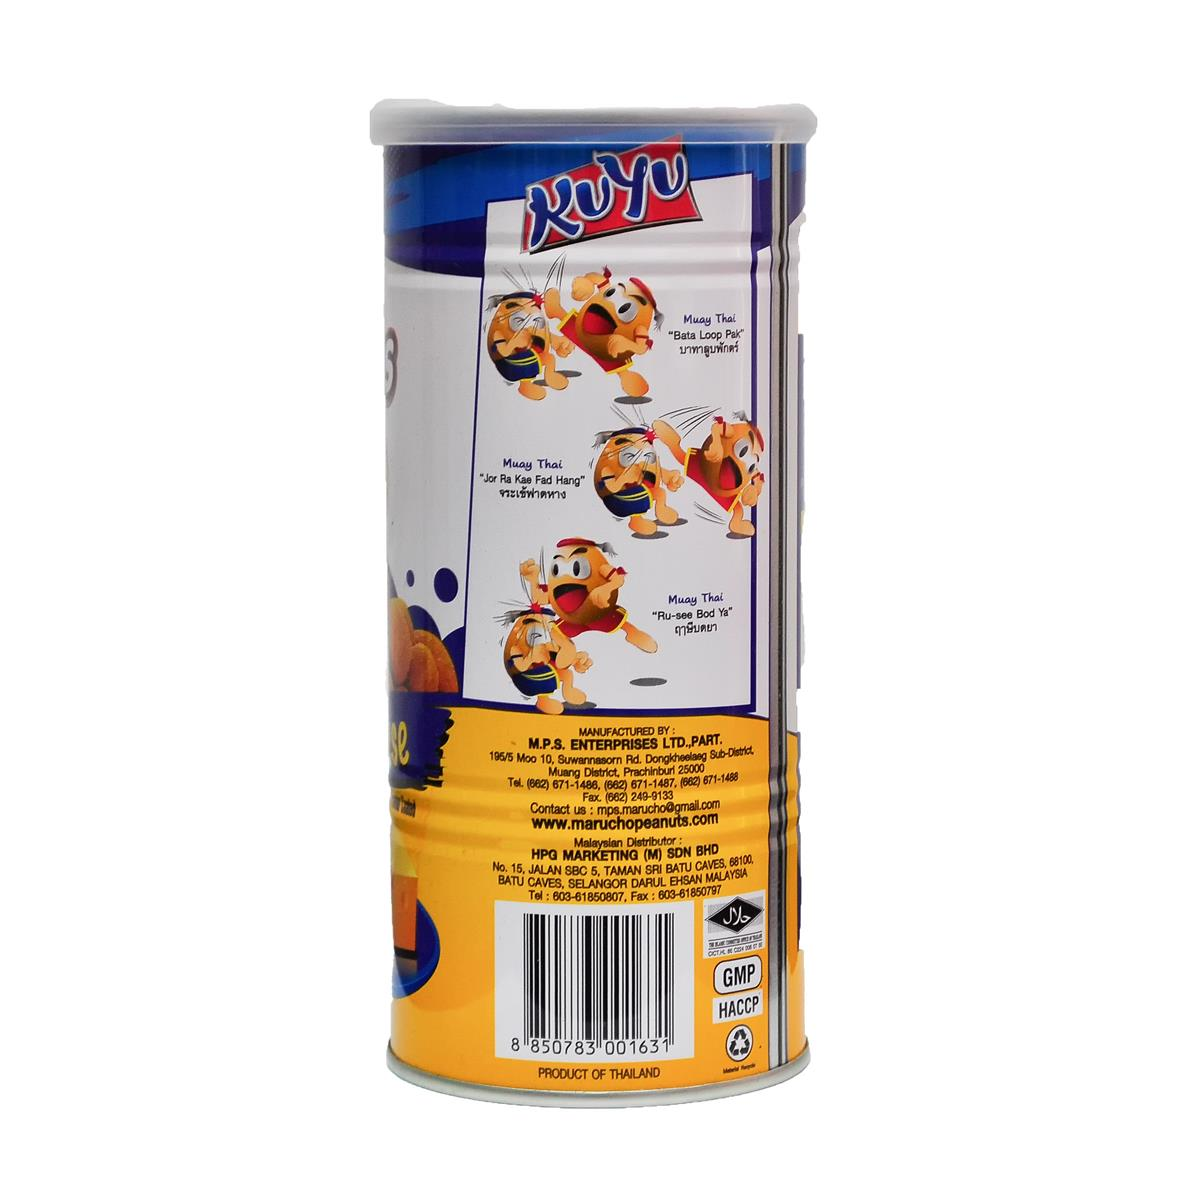 Kuyu Roasted Peanut Cheese 200g